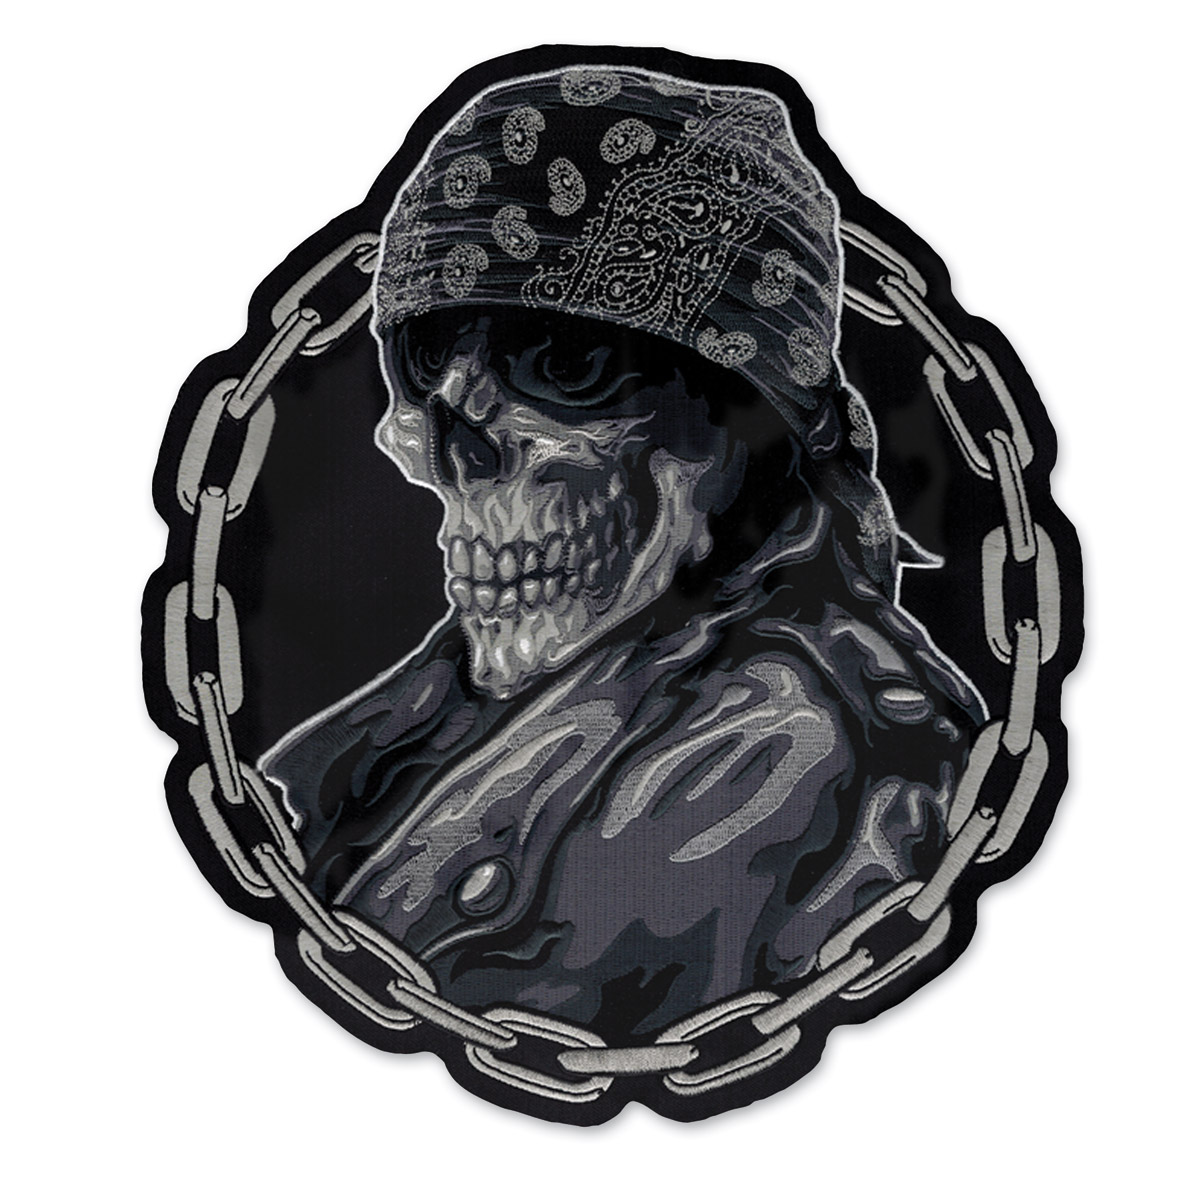 Lethal Threat Bandana Biker From Hell Embroidered Patch